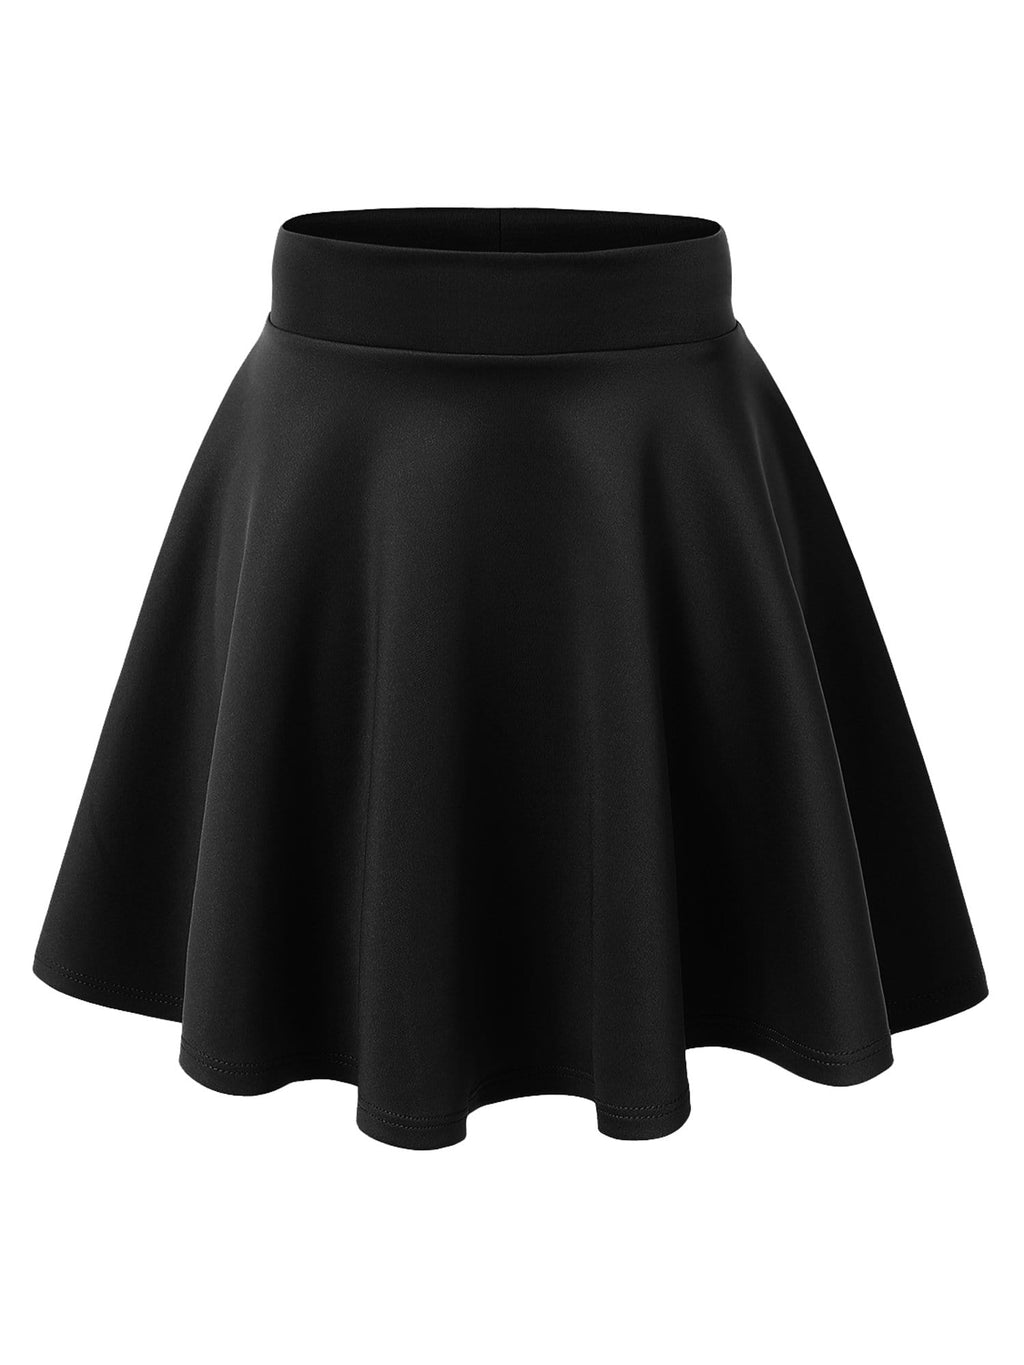 90% Rayon 10% Spandex WOMENS BOTTOM Women's Basic Versatile Stretchy Flared Casual Mini Skater Skirt